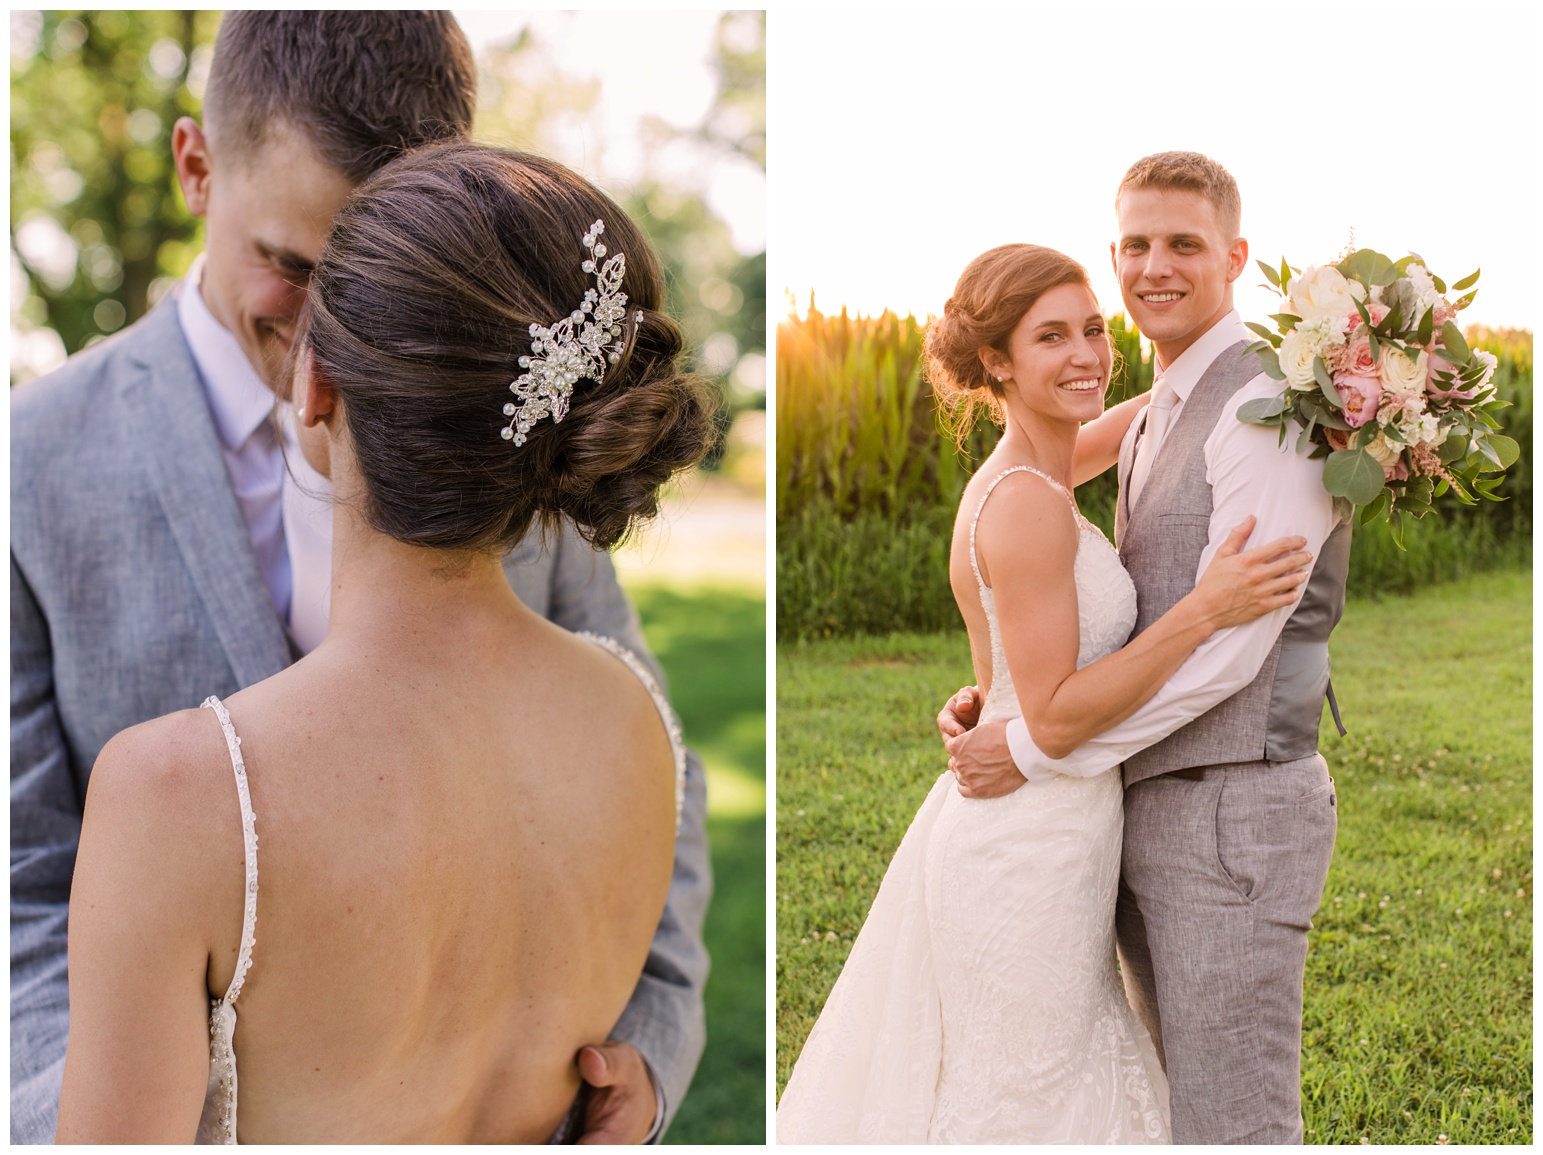 bride and groom outdoors at eastern shore maryland md wedding in the summer - cornfields - by laura's focus photography